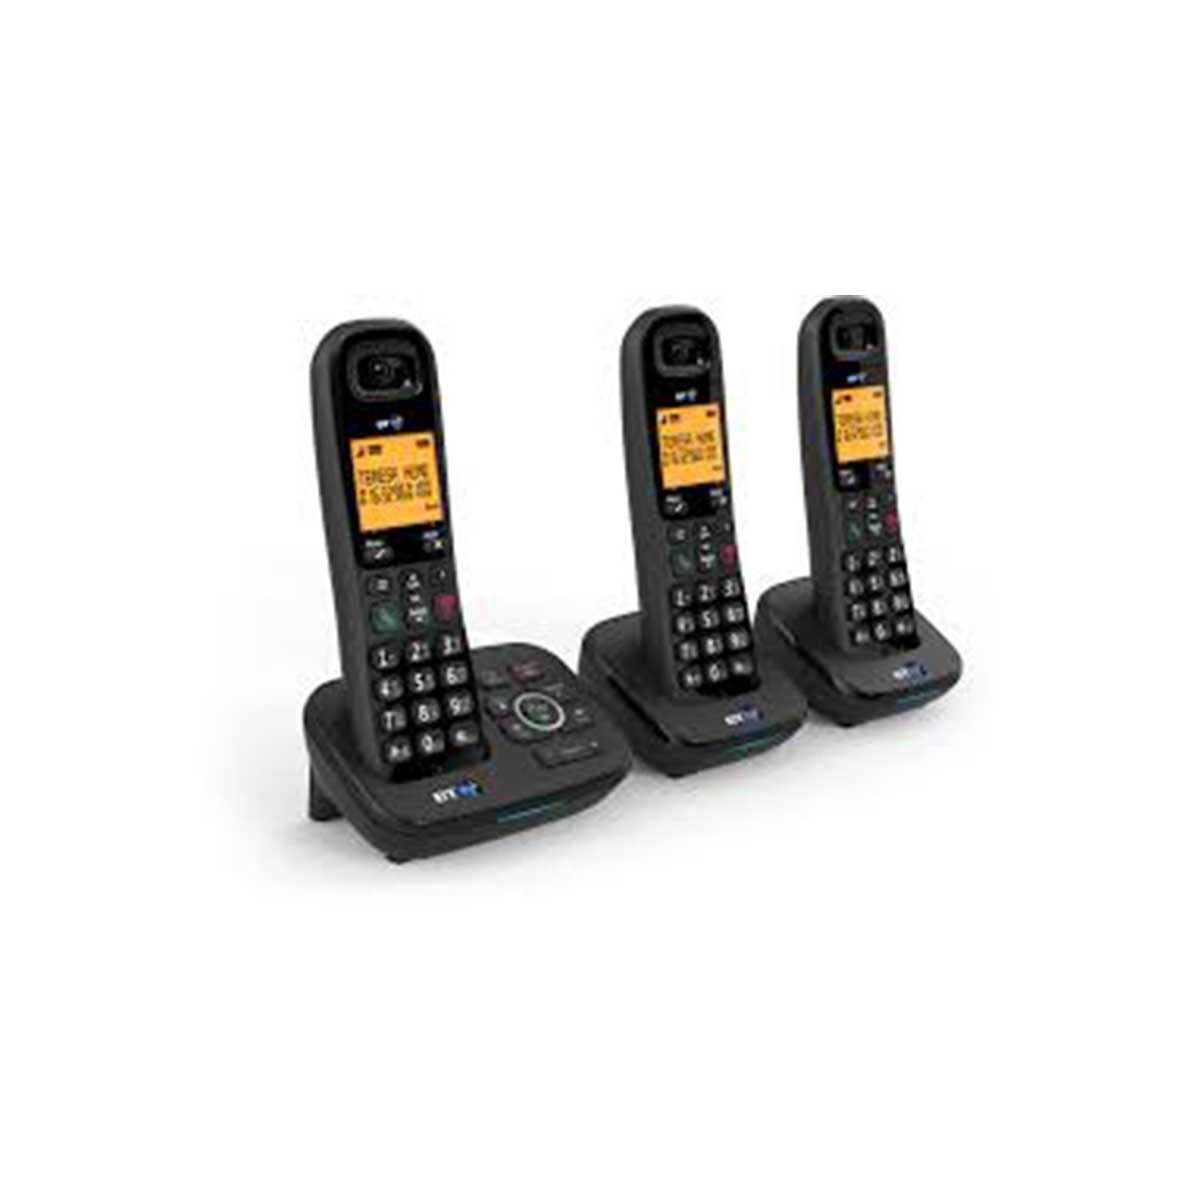 BT BT1700 Trio Dect Telephone with Nuisance Call blocking and Answer Machine